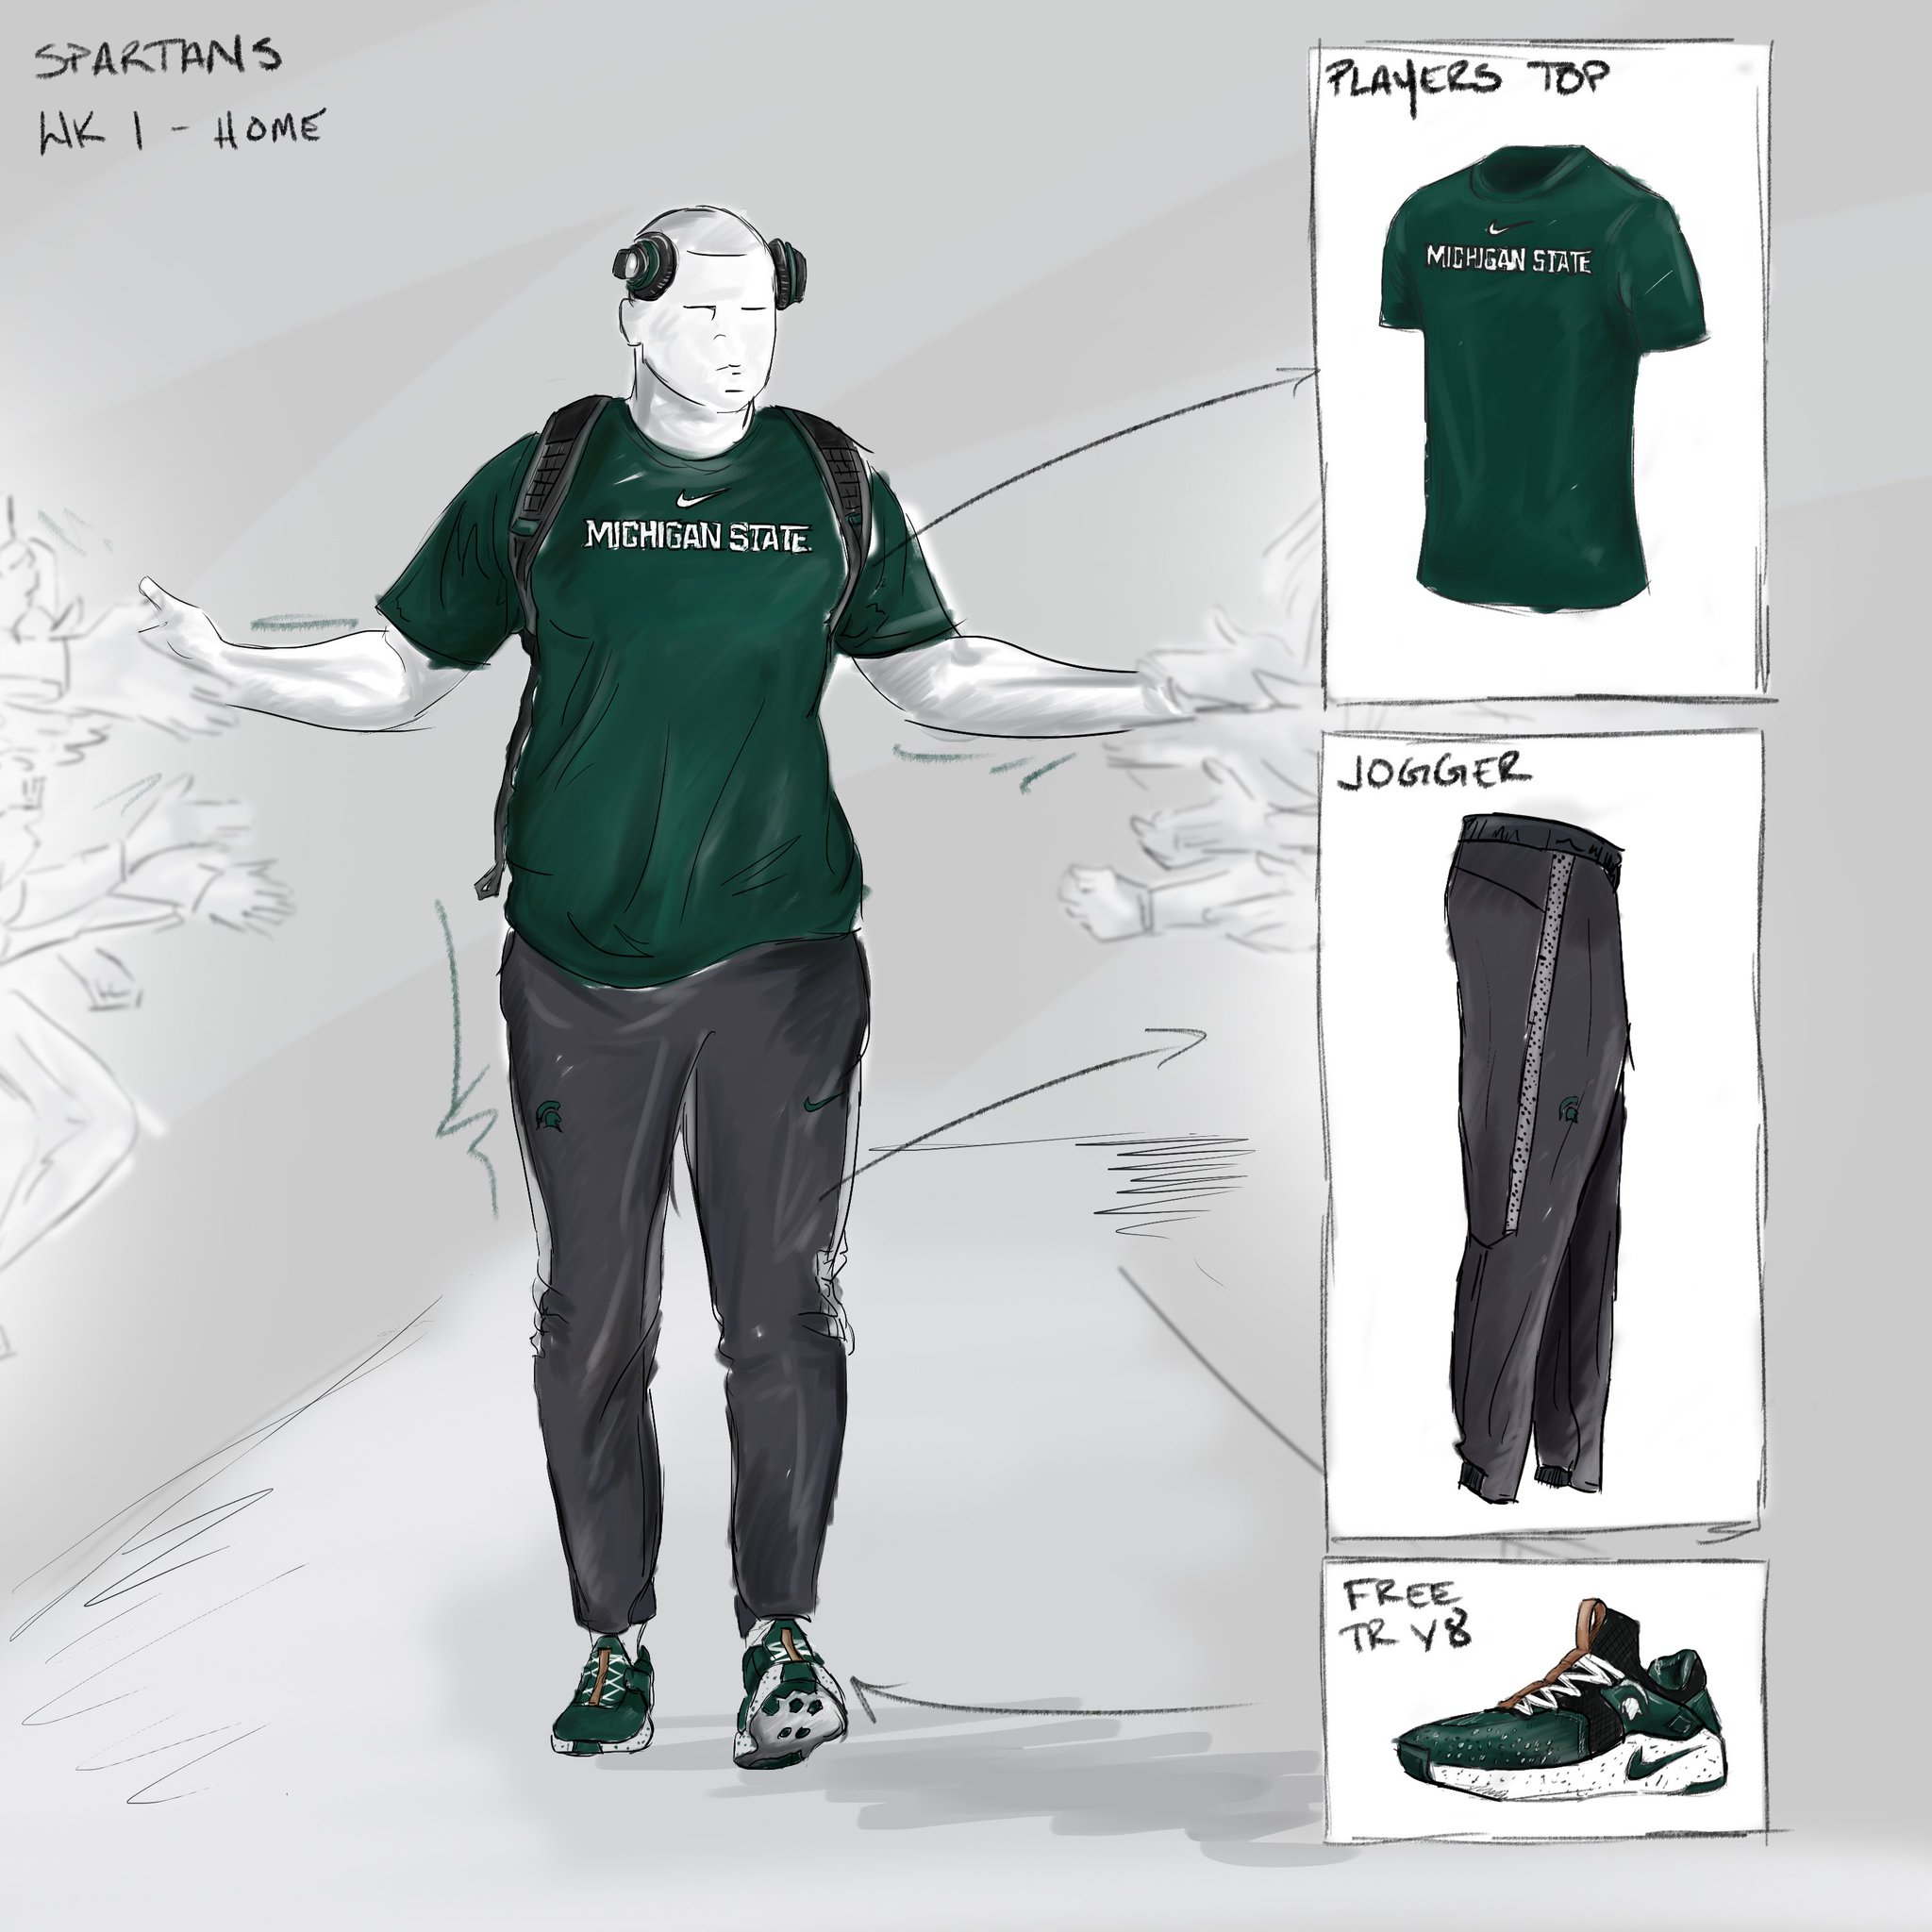 Pre-game day threads for week 1. Coaches sideline gear ��.  Shop now at https://t.co/CDlulp9dV2 #GoGreen #Heave https://t.co/IV7qm9GMUF